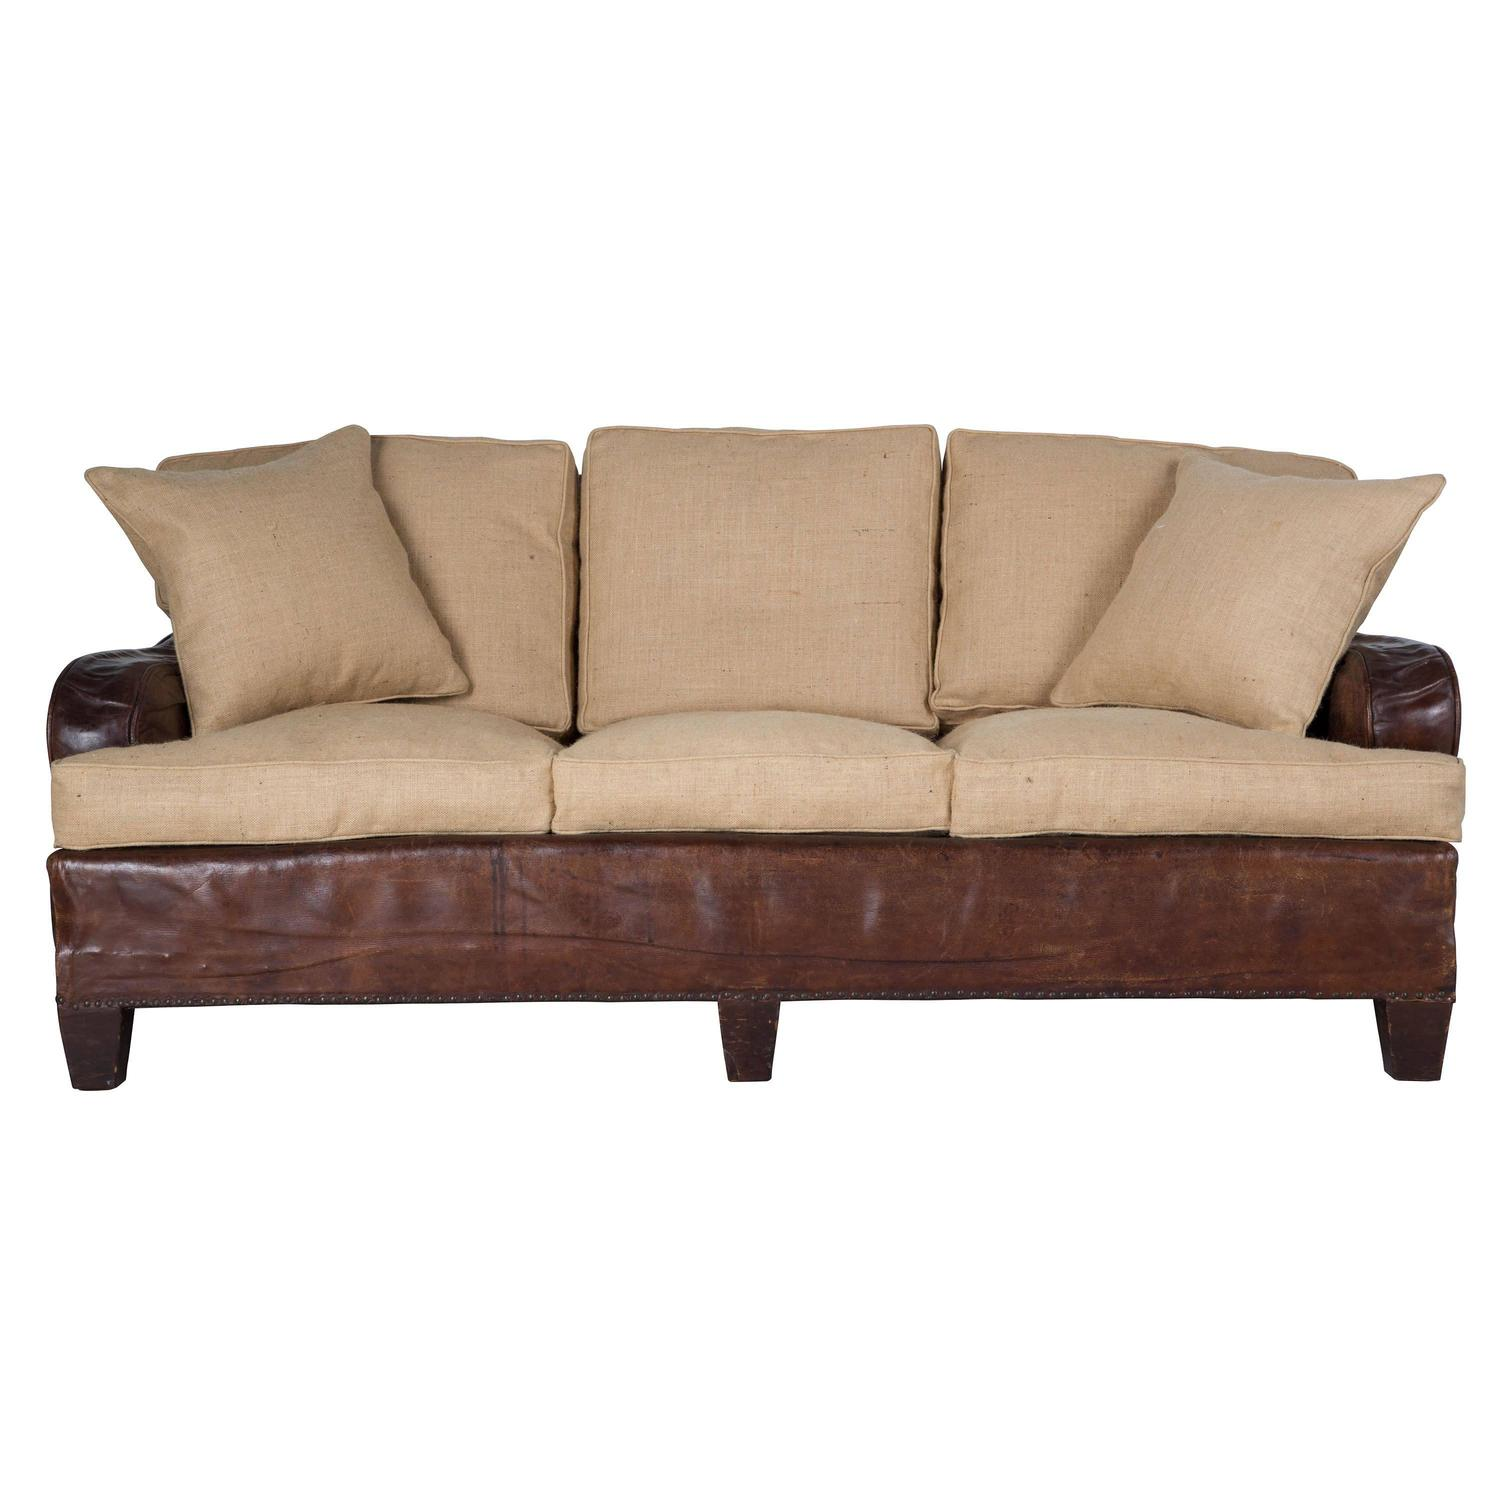 Reupholstered Three Seat Leather Sofa At 1stdibs